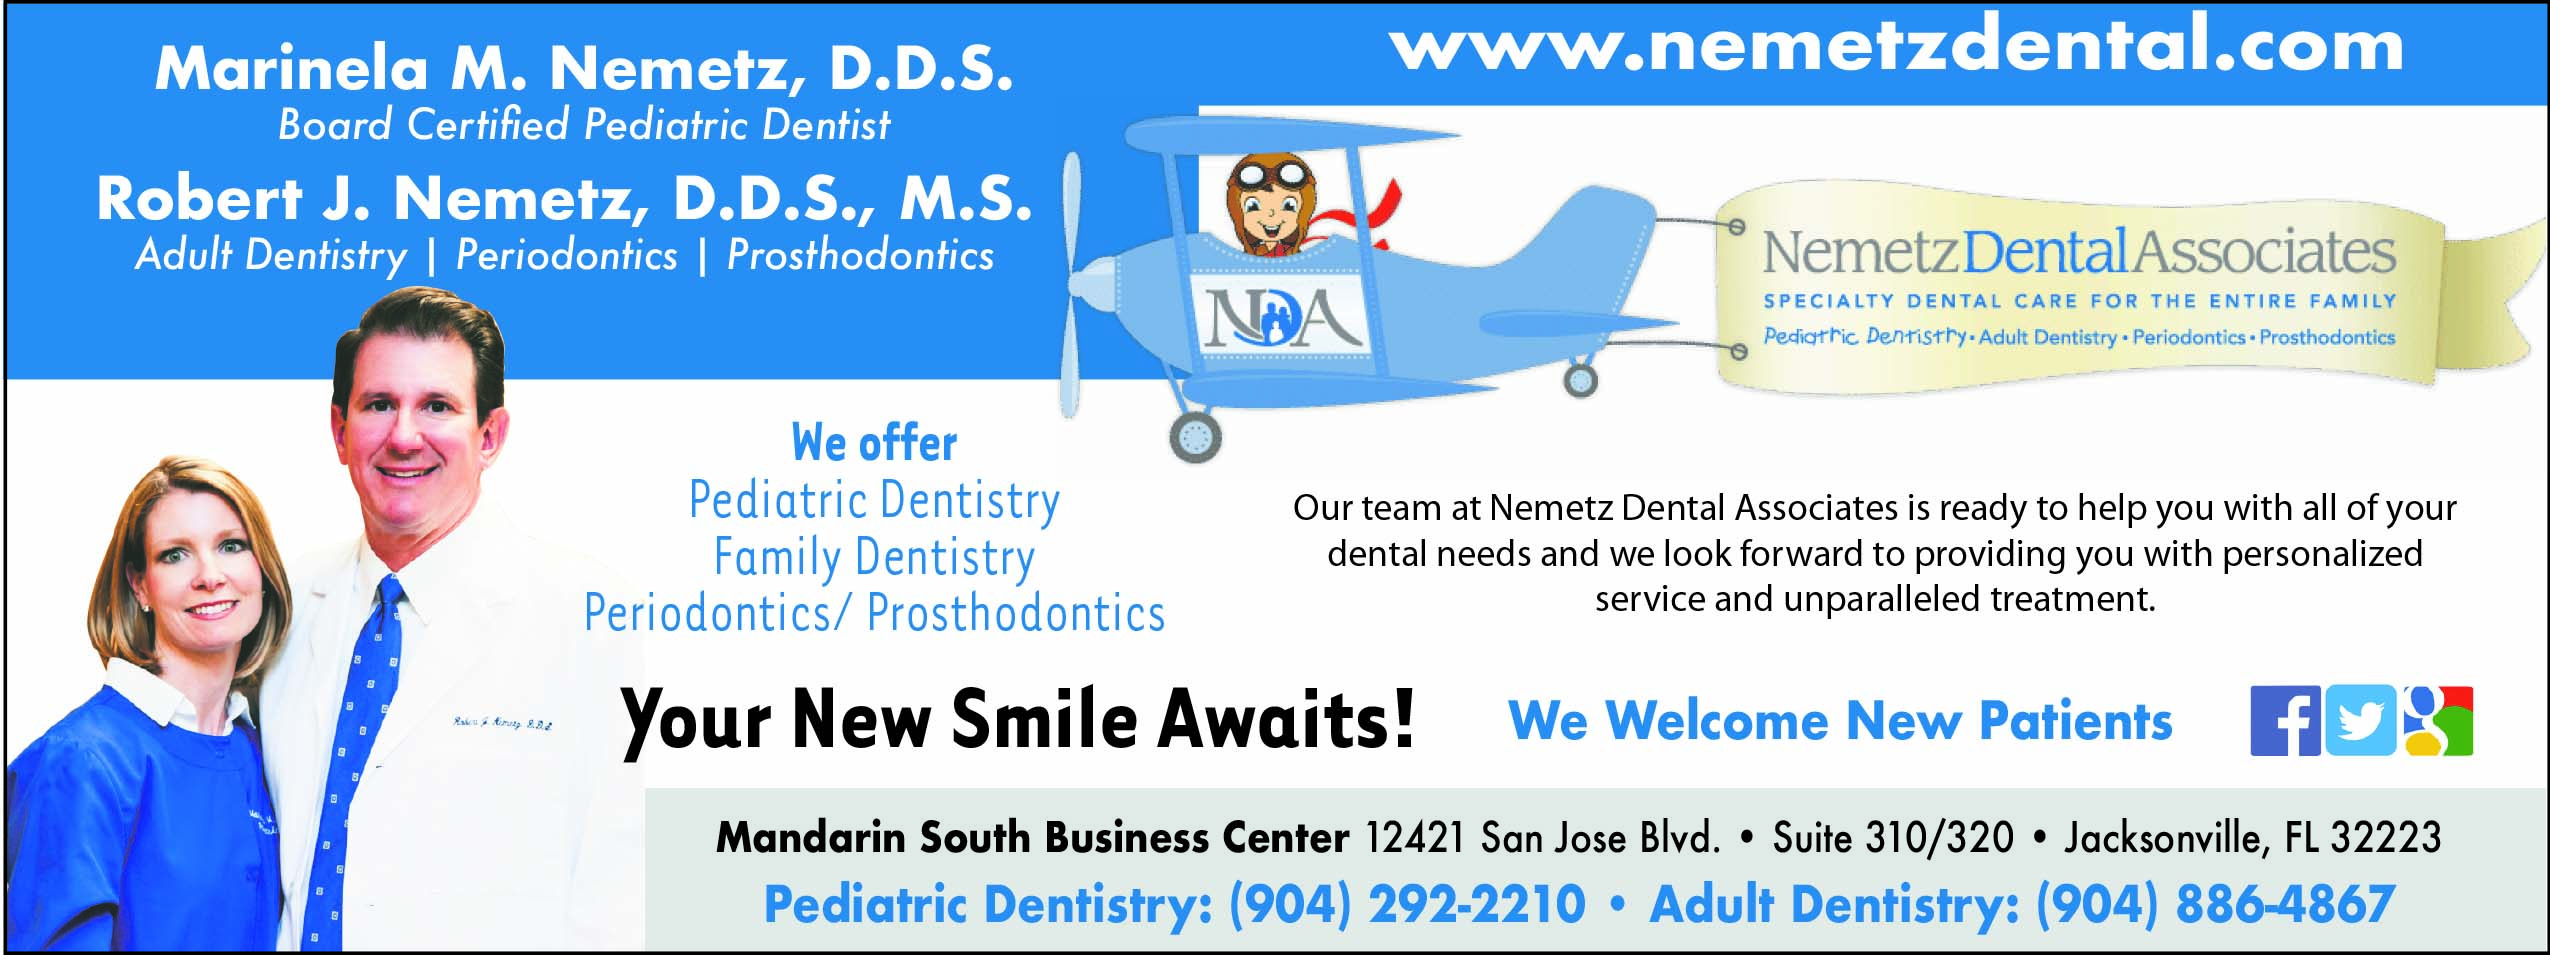 Nemetz Dental Associates! Your new smile awaits! We offer Pediatric, Family dentistry, Periodontics/prosthodontics. Our team at nemetz dental associates is ready to help you with all of your dental needs and we look forward to providing you with personalized service and unparalleled treatment. Call us Pediatric dentistry 904 292 2210 Adult Dentistry 904 886 4867